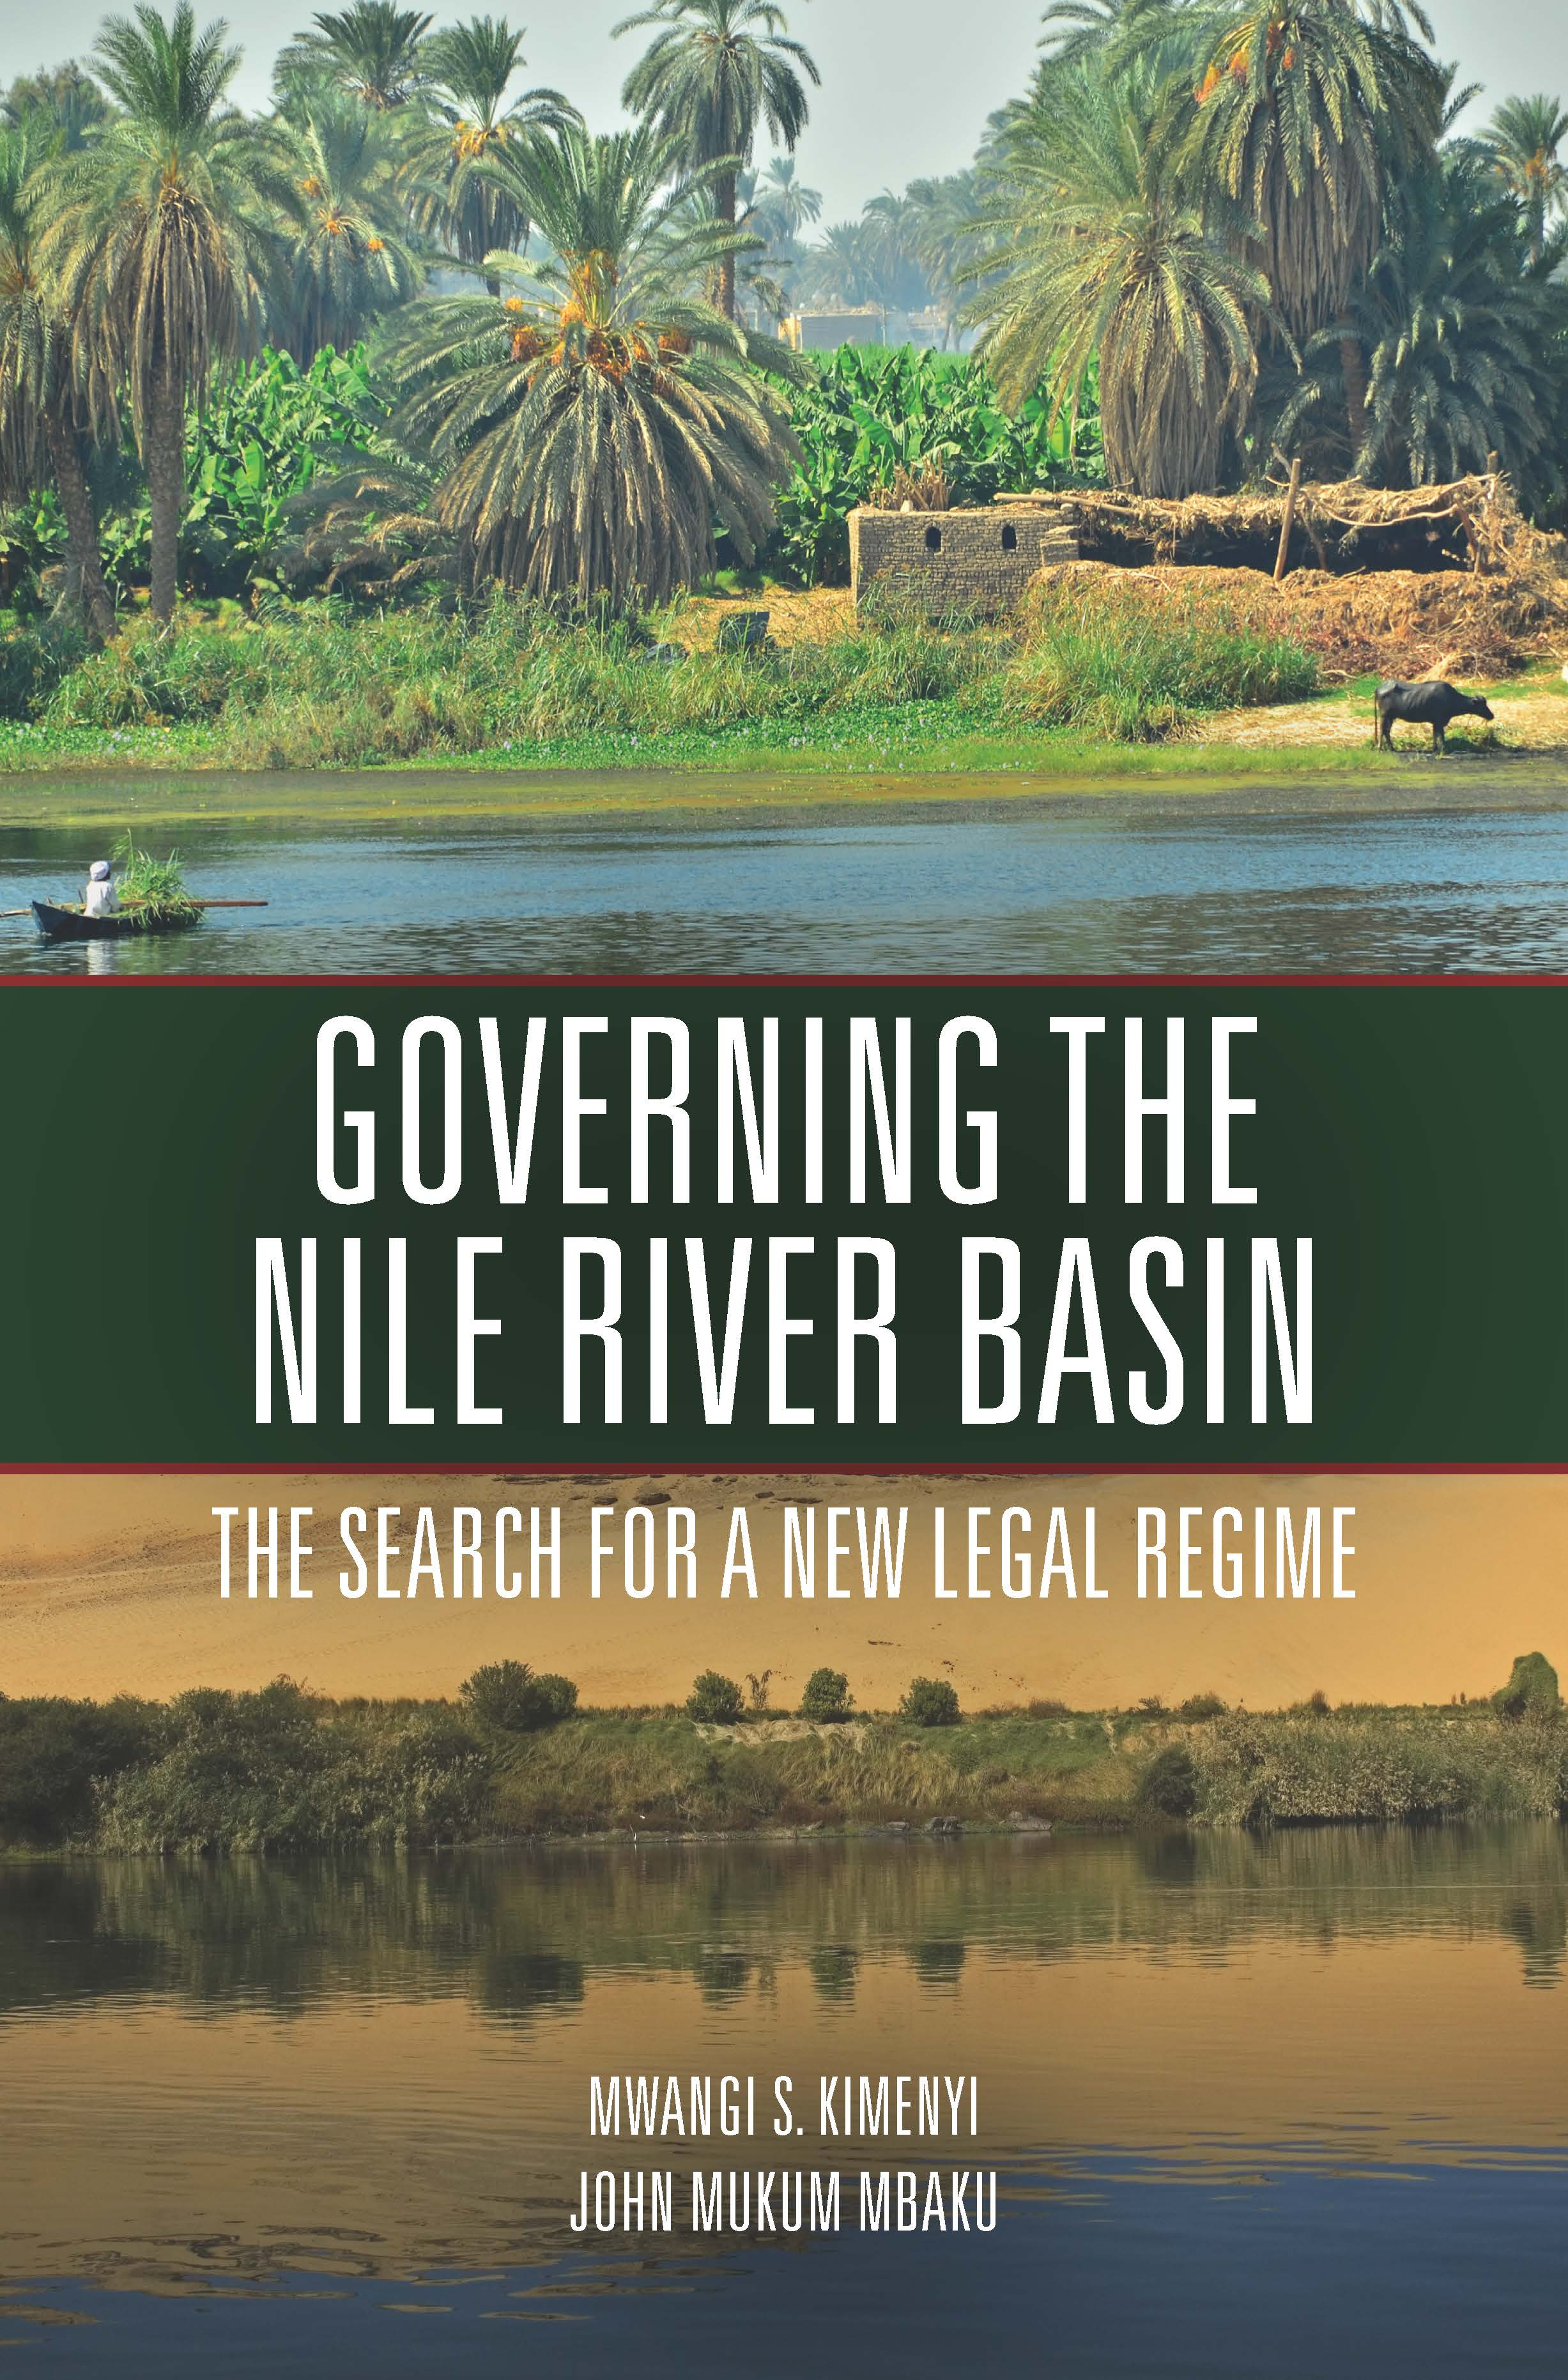 the marshall plan and the shaping of american strategy brookings governing the nile river basin